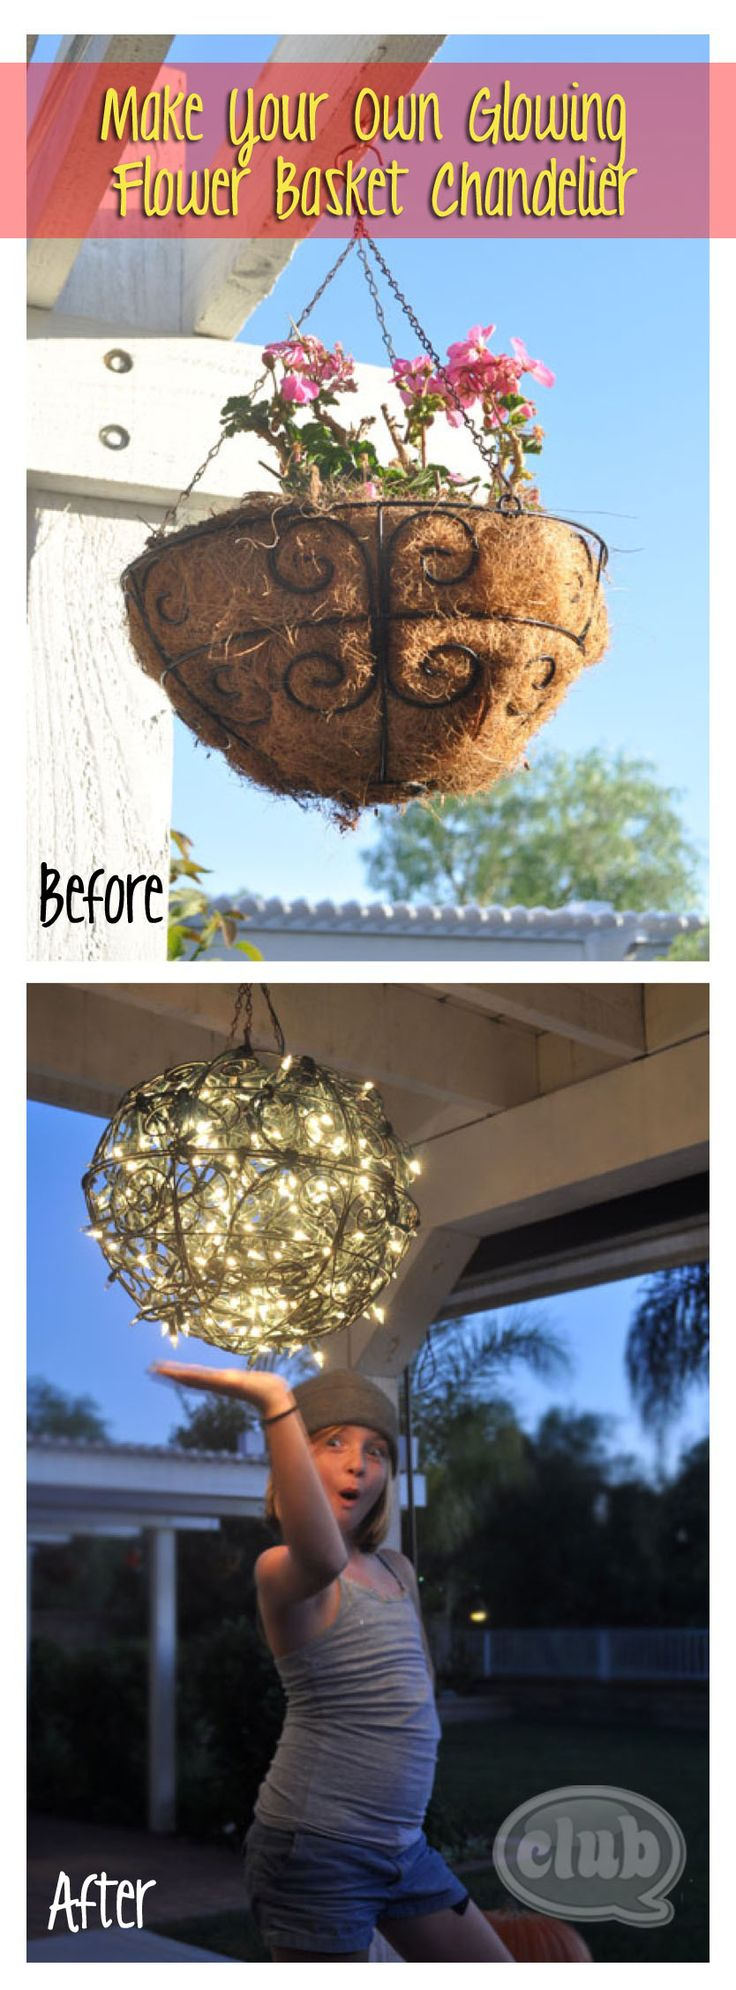 Flower Basket Chandelier DIY - turn 2 wire frame flower baskets, pipe cleaners, and xmas lights into a cool glowing chandelier!